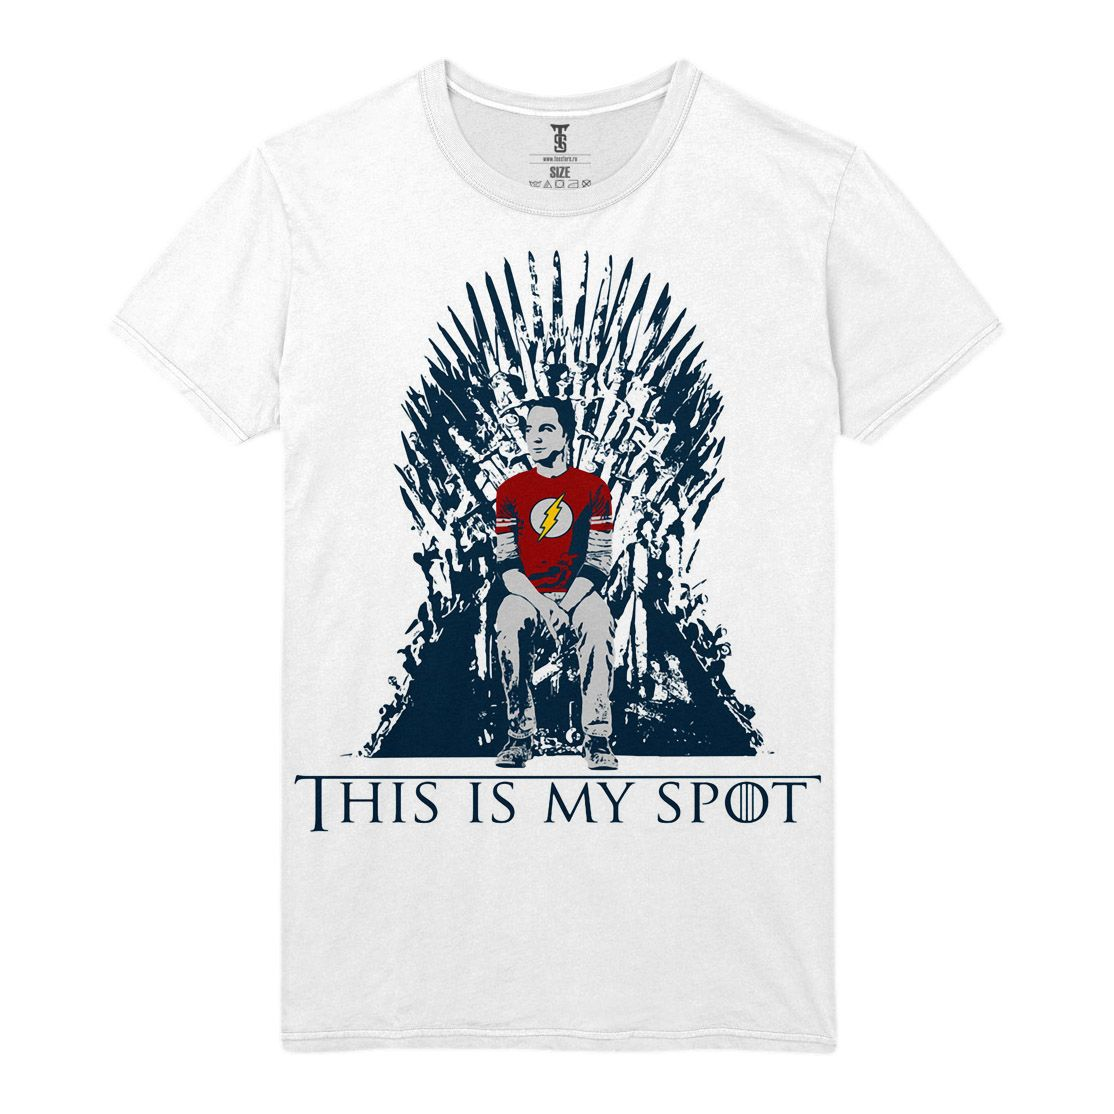 Nice T Shirt Sheldon Cooper Game Of Thrones Iron Throne Fun Joke Merch Loot Amazon Apparels Australia Boy Buy Ebay Female Girls India Kids Loot